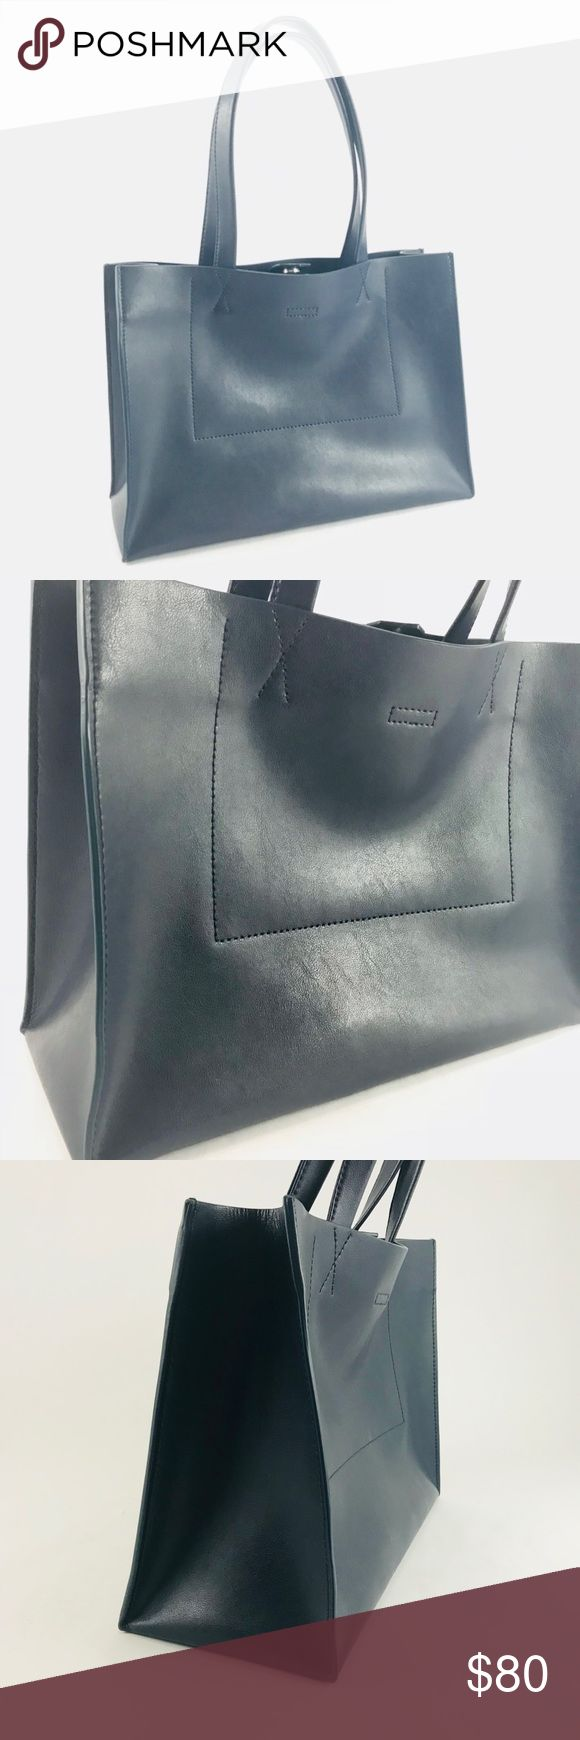 Navy Banana Republic tote bag Pre-owned Navy Blue Banana Republic portfolio structured leather tote bag. Retail price $148.00.  See pictures for condition. Banana Republic Bags Totes